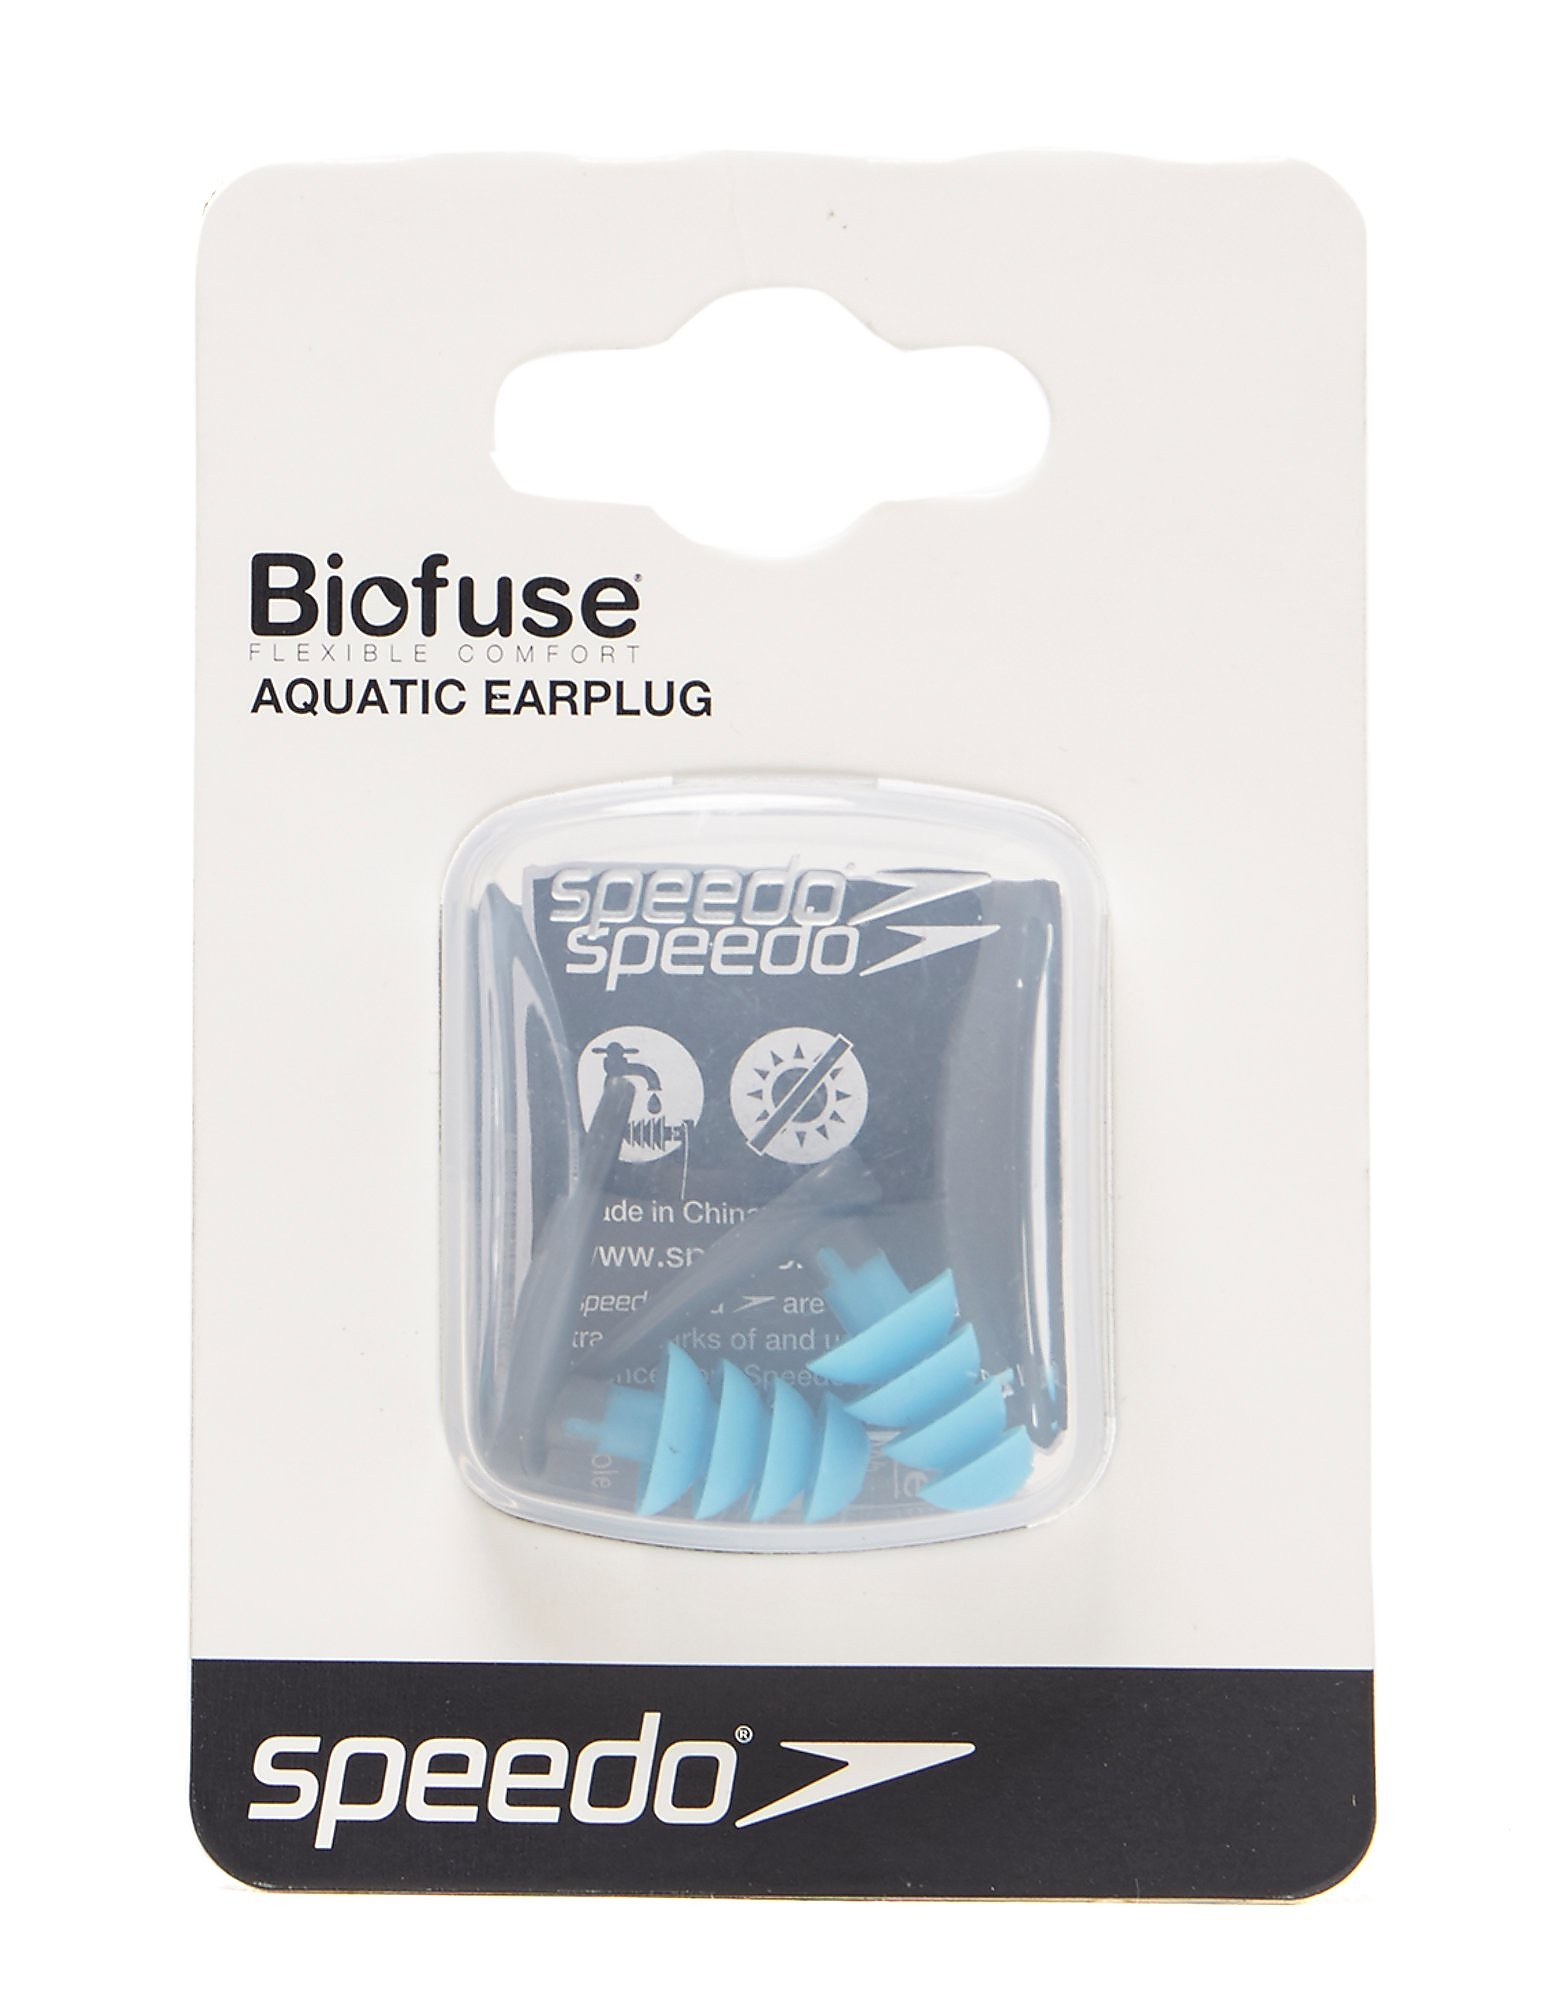 Speedo Biofuse Earplugs